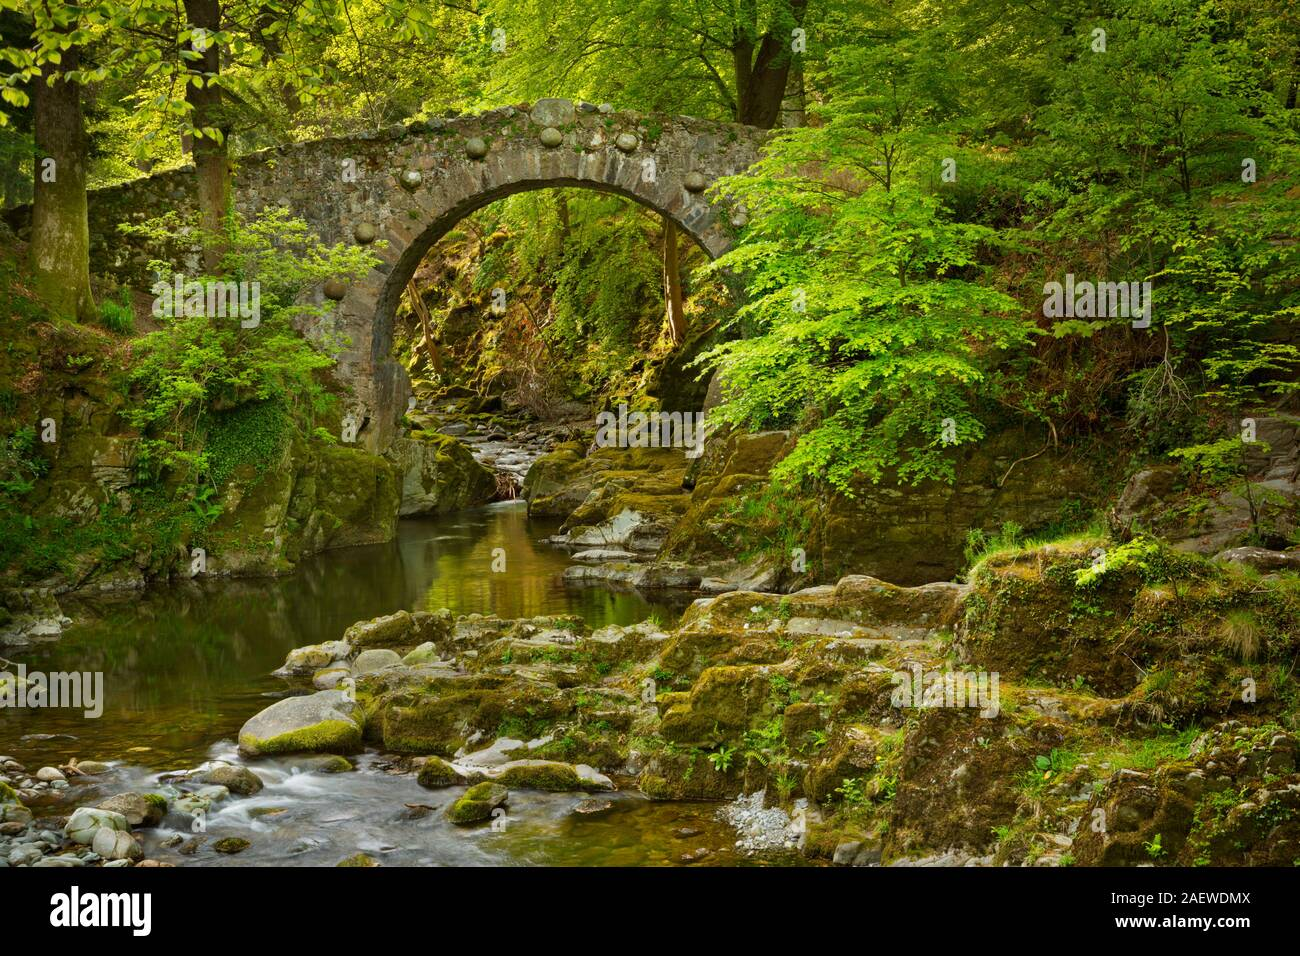 Foley's Bridge over the Shimna River in Tollymore Forest Park, Northern Ireland. Stock Photo